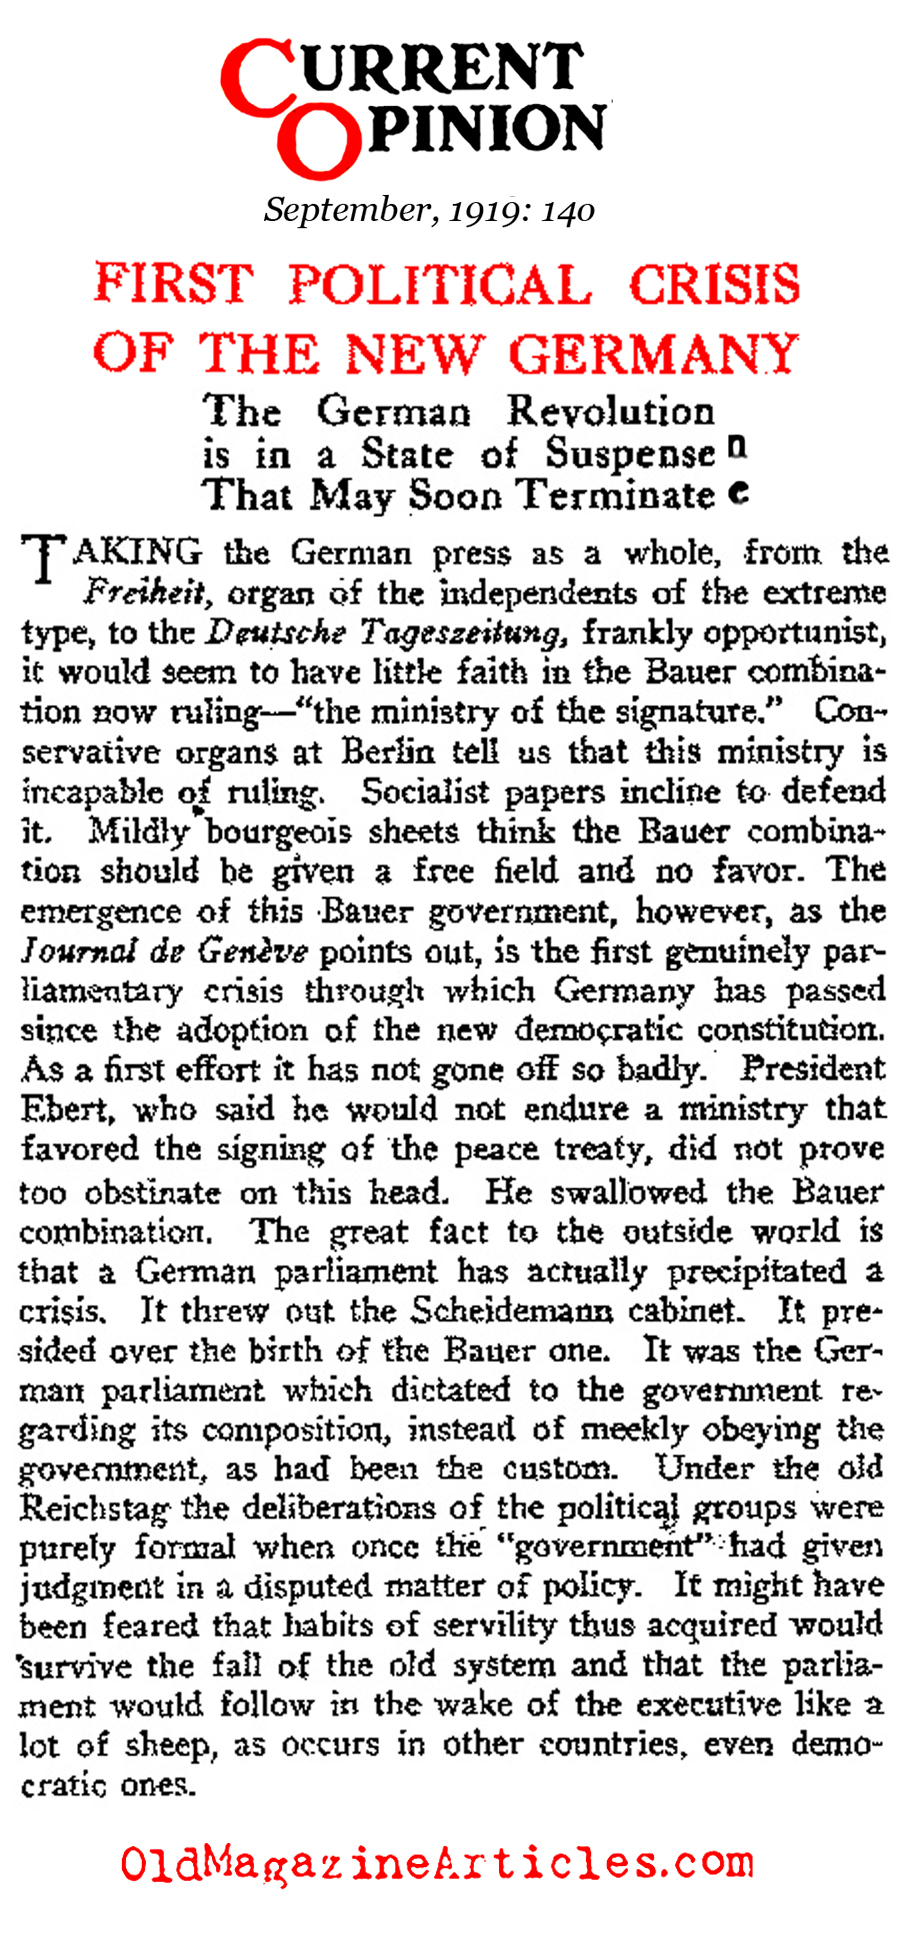 The Political Crisis in Post-War Germany (Current Opinion Magazine, 1919)